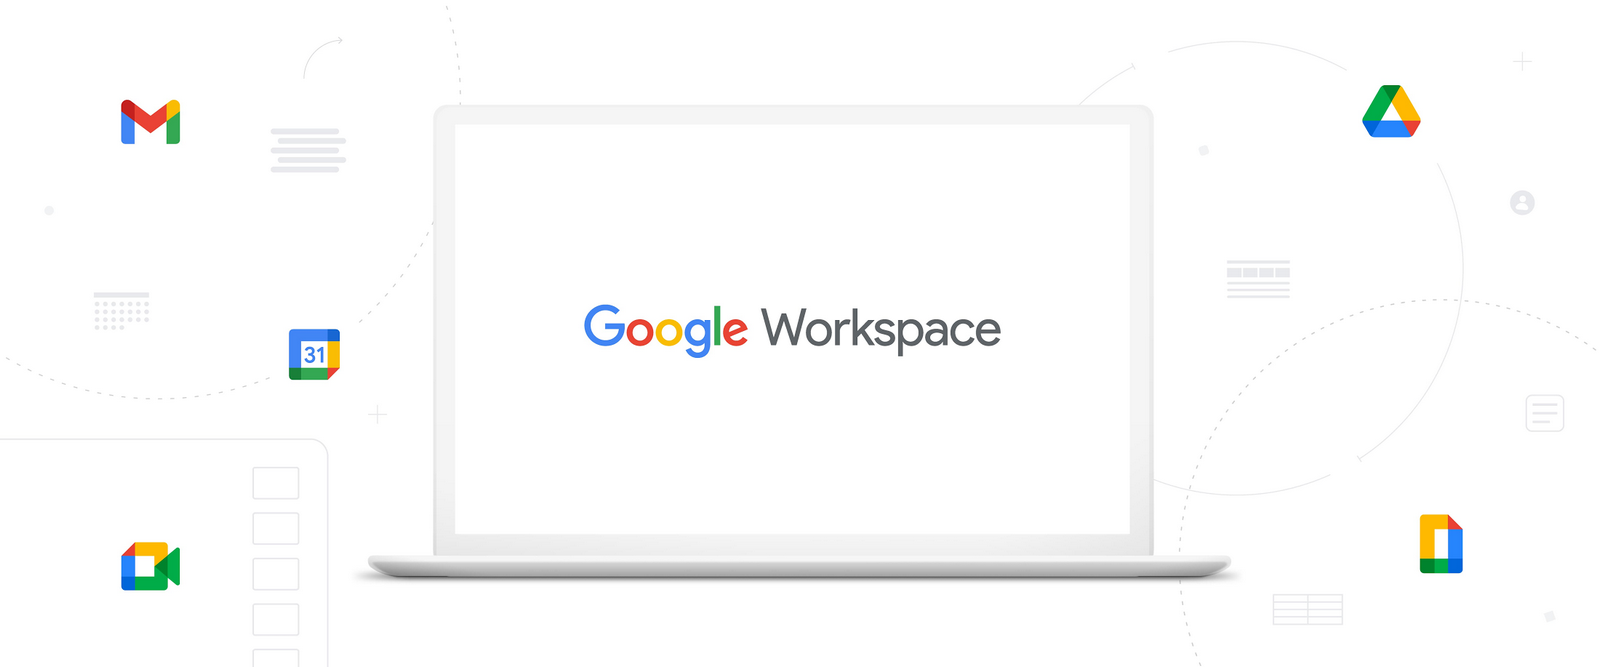 G Suite diventa Google Workspace